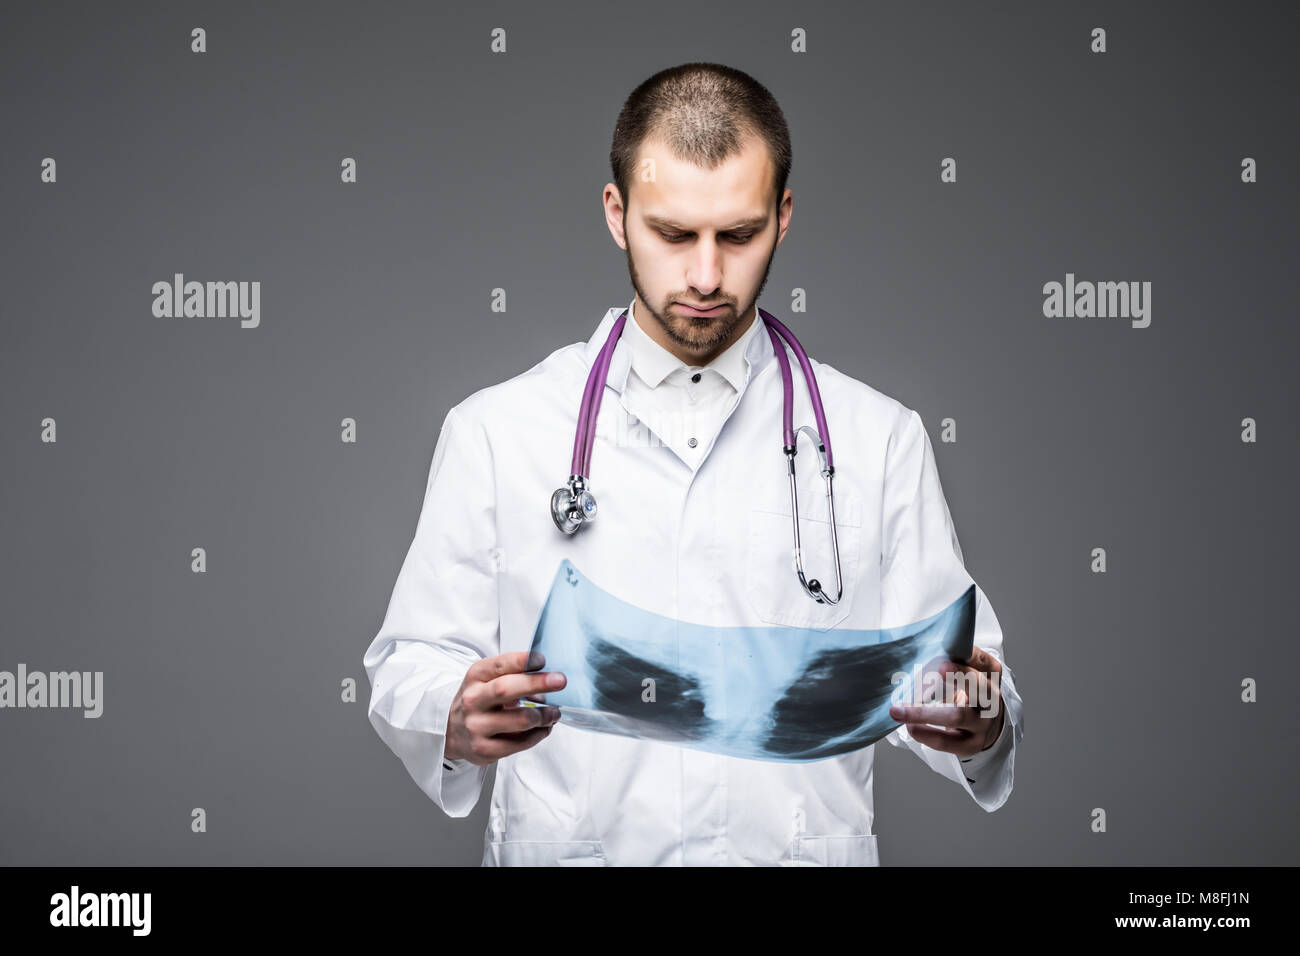 Attractive young male doctor looking to the camera seriously while examining an x-ray scan of his patient posing - Stock Image